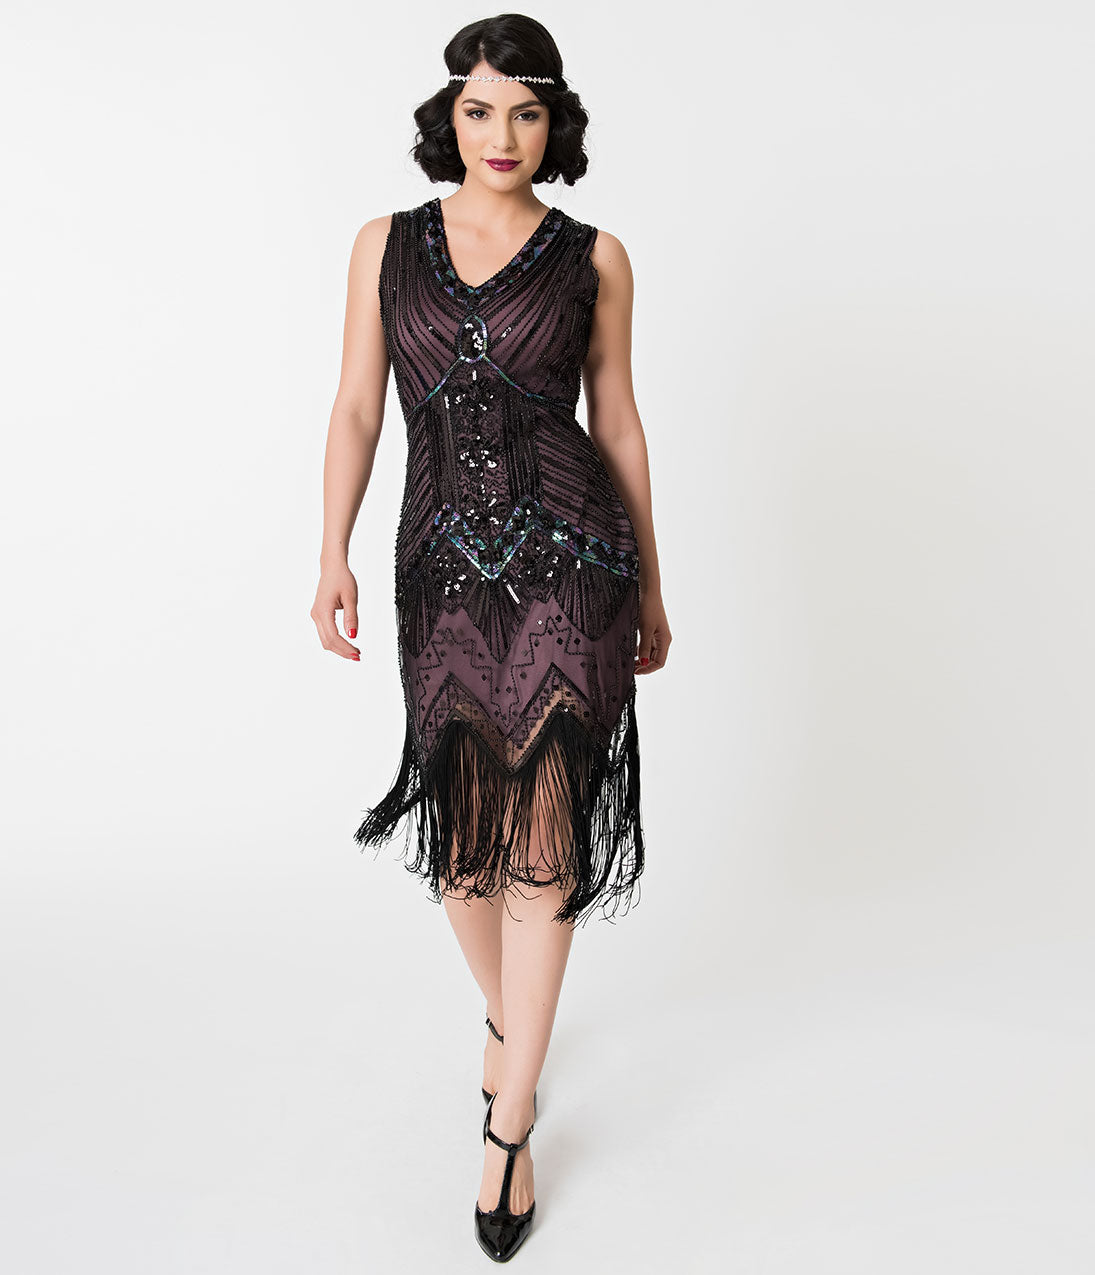 Best 1920s Prom Dresses – Great Gatsby Style Gowns Unique Vintage 1920S Deco Purple  Black Sequin Veronique Fringe Flapper Dress $98.00 AT vintagedancer.com